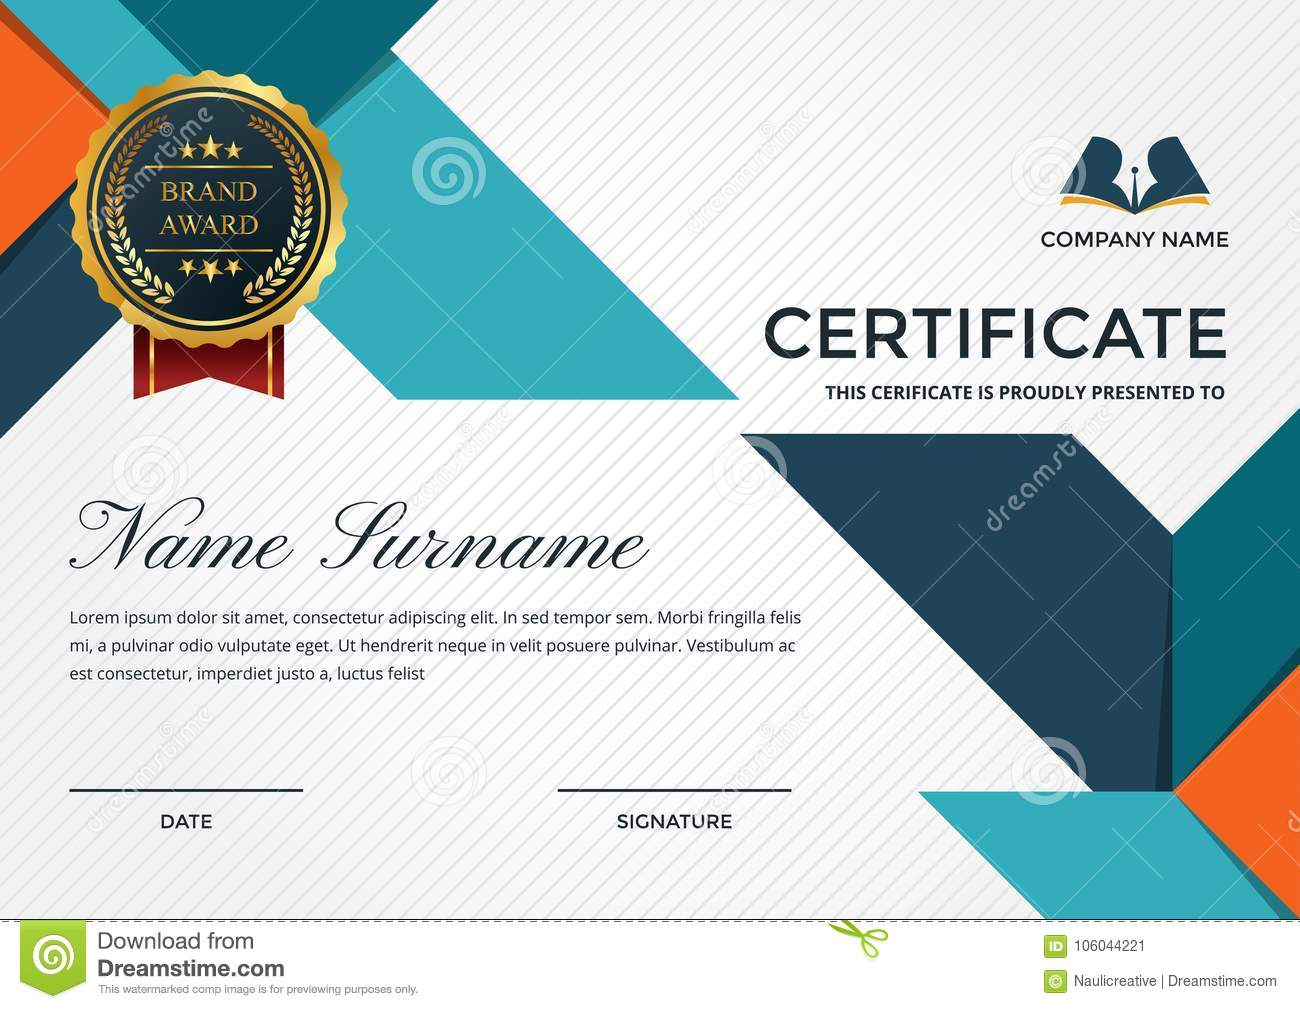 Premium business certificate template with education symbol stock modern premium company certificate of achievement and appreciation template with logo illustration cheaphphosting Images